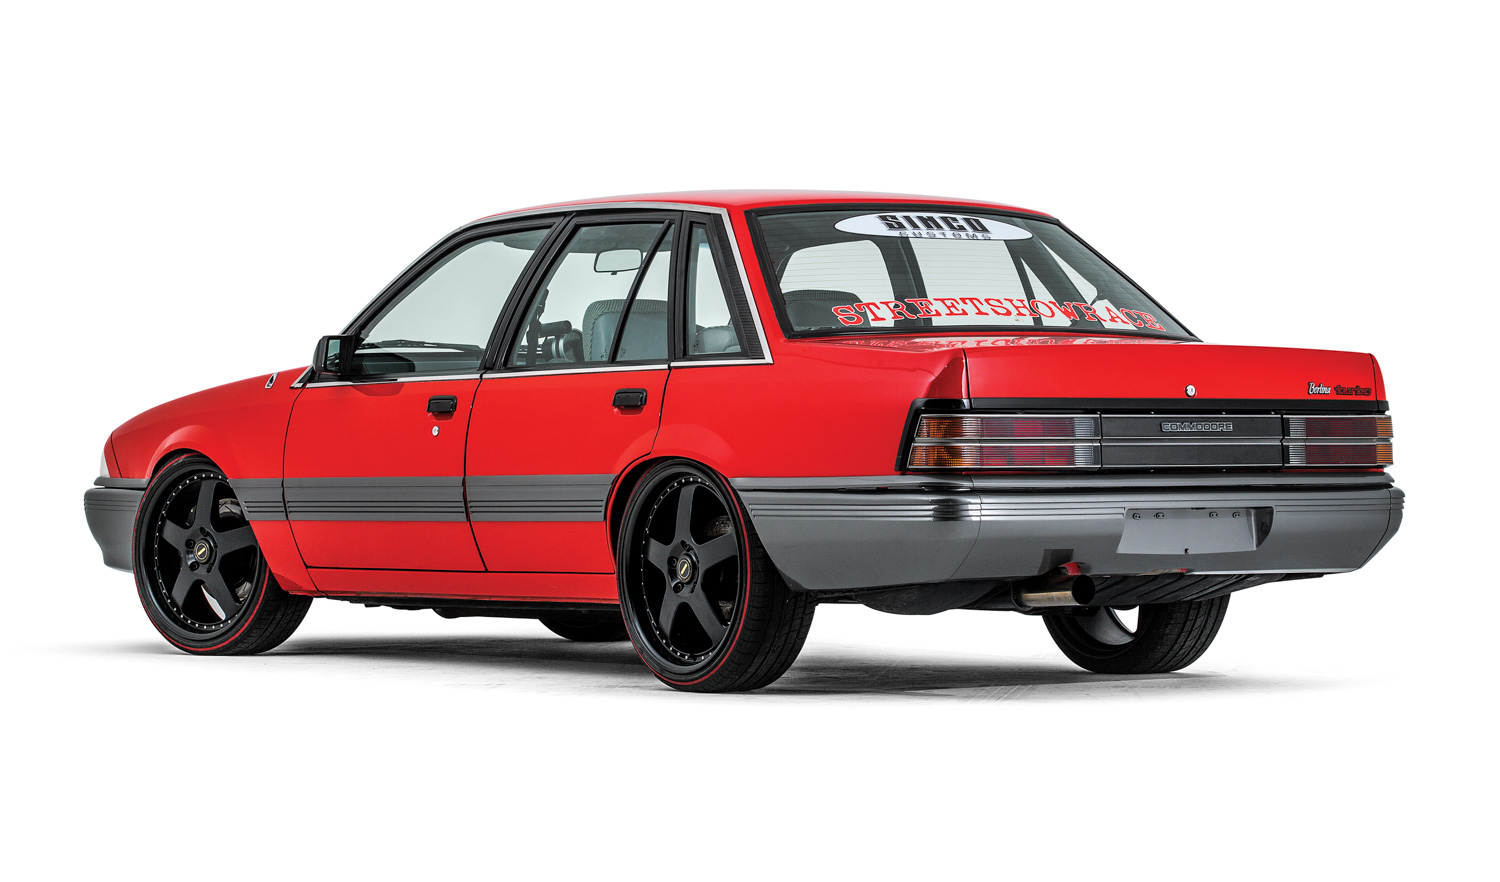 medium resolution of check out jay s hectic 1987 holden vl turbo